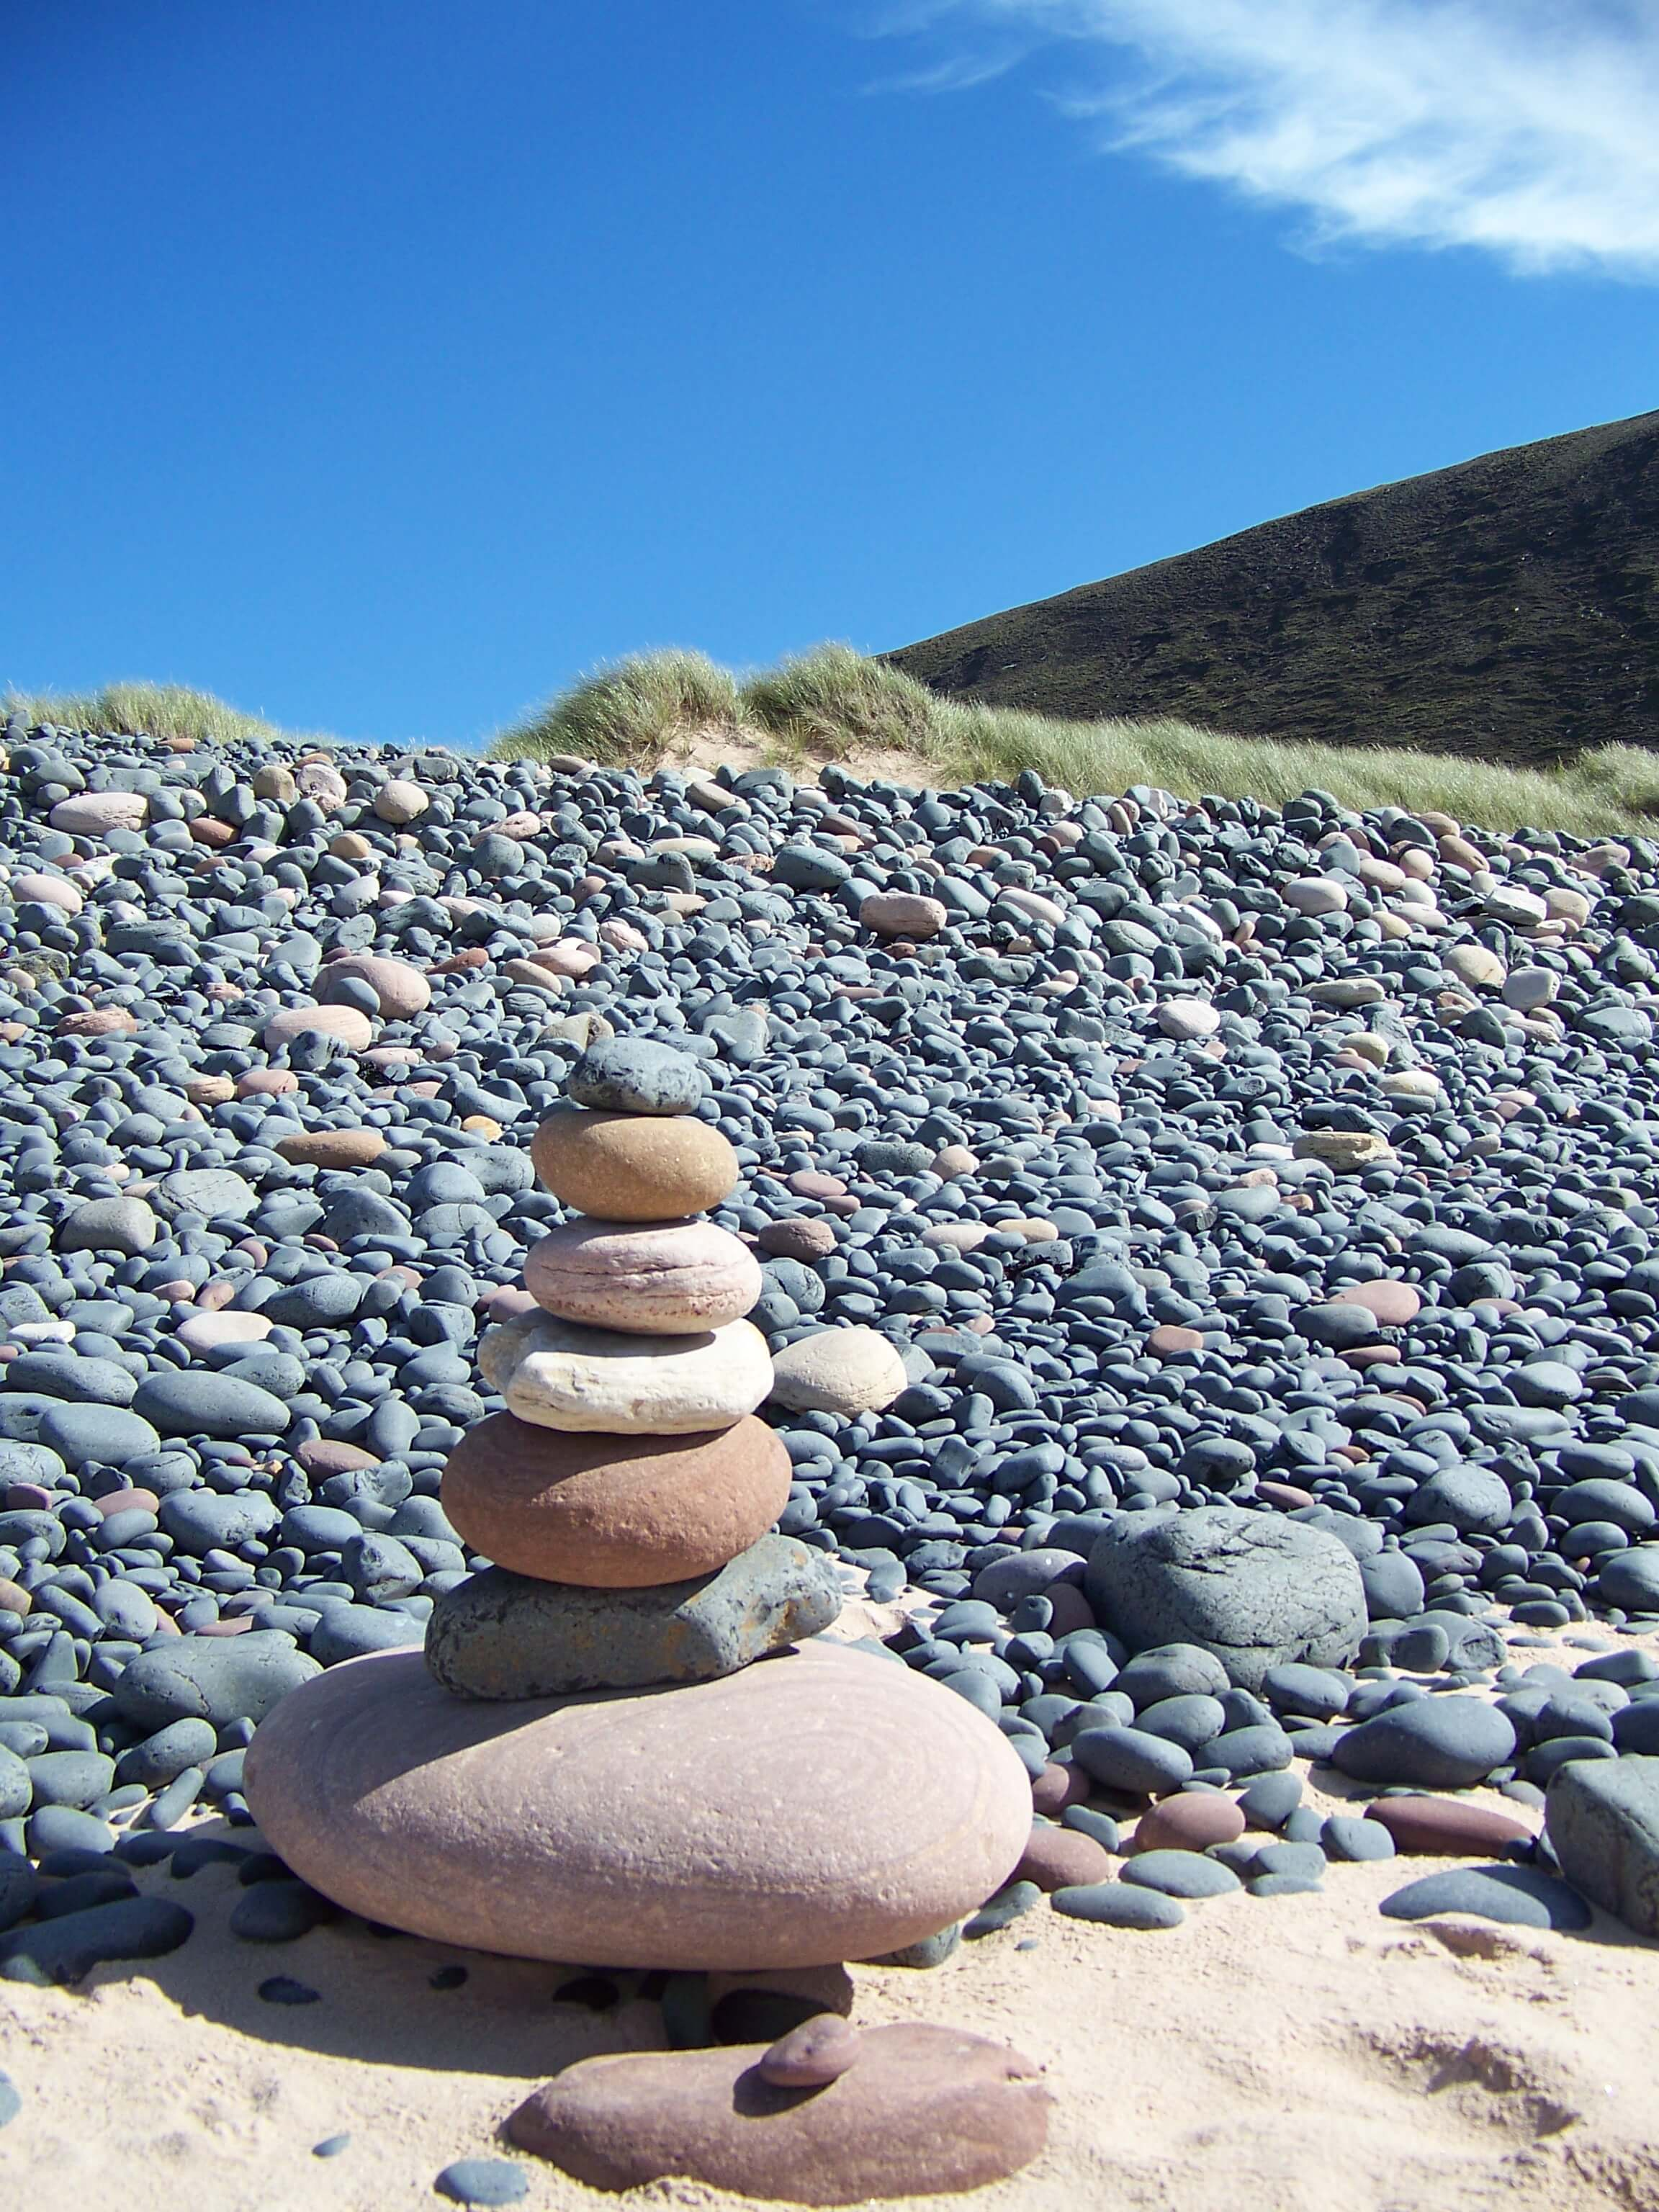 Rock stack left by a visitor on the beach, Hoy, Orkney